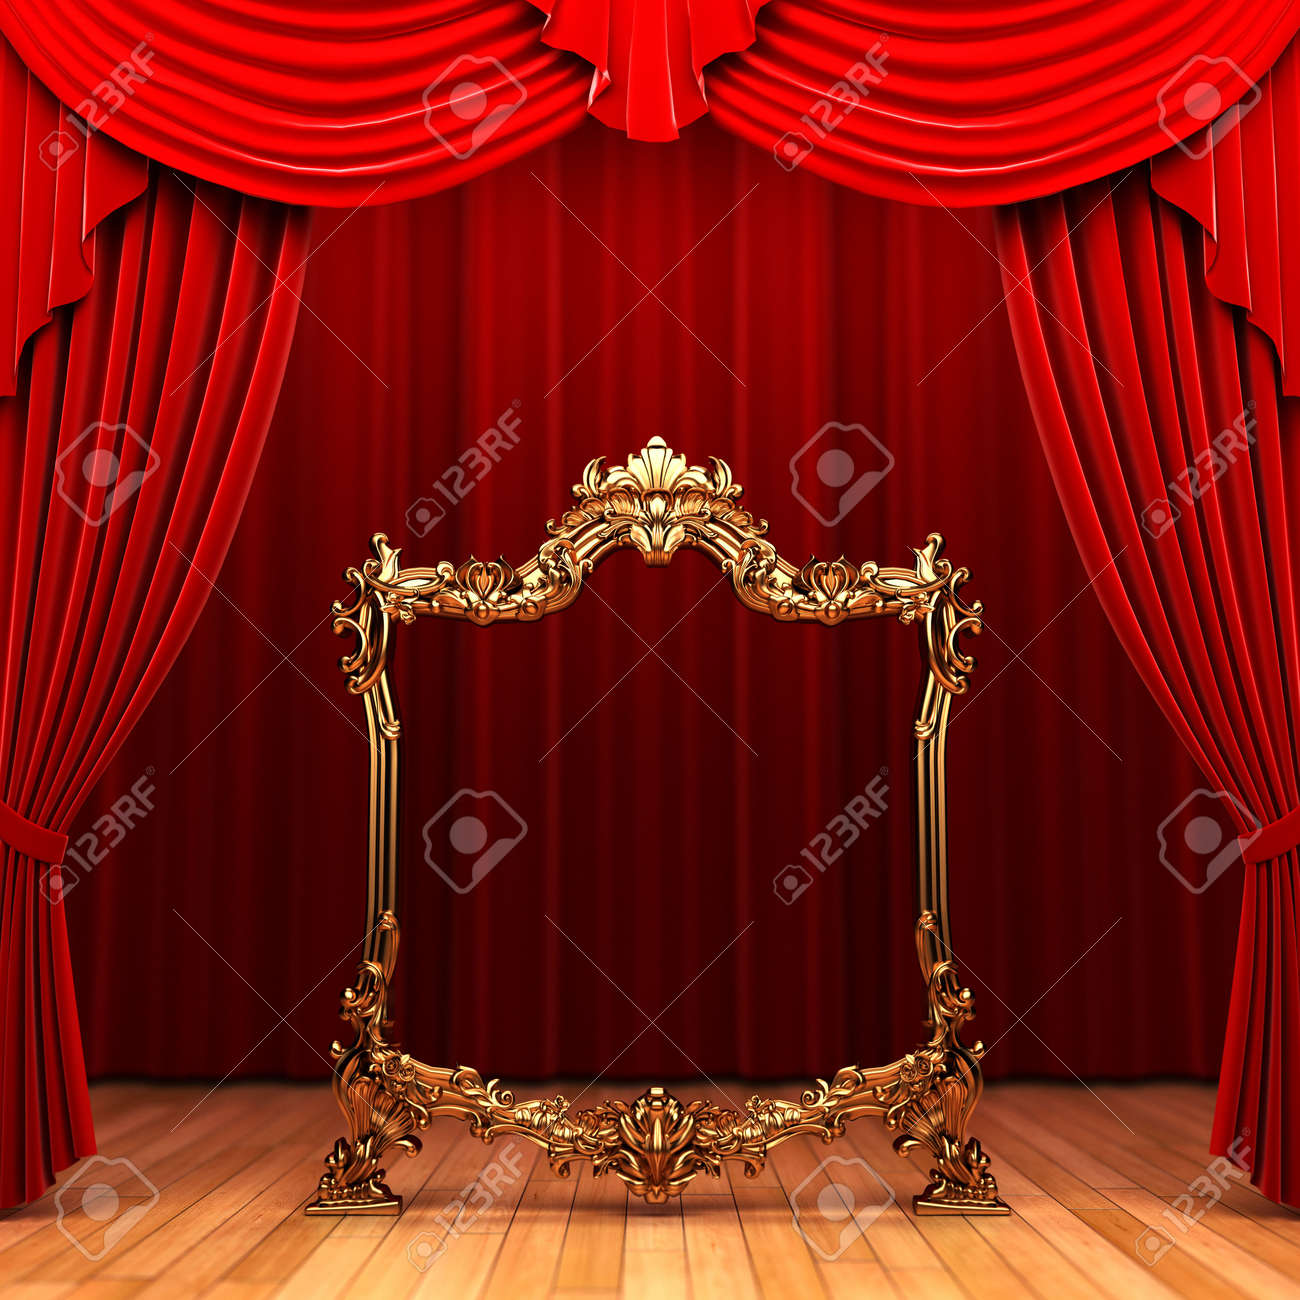 red curtains, gold frame Stock Photo - 6177792